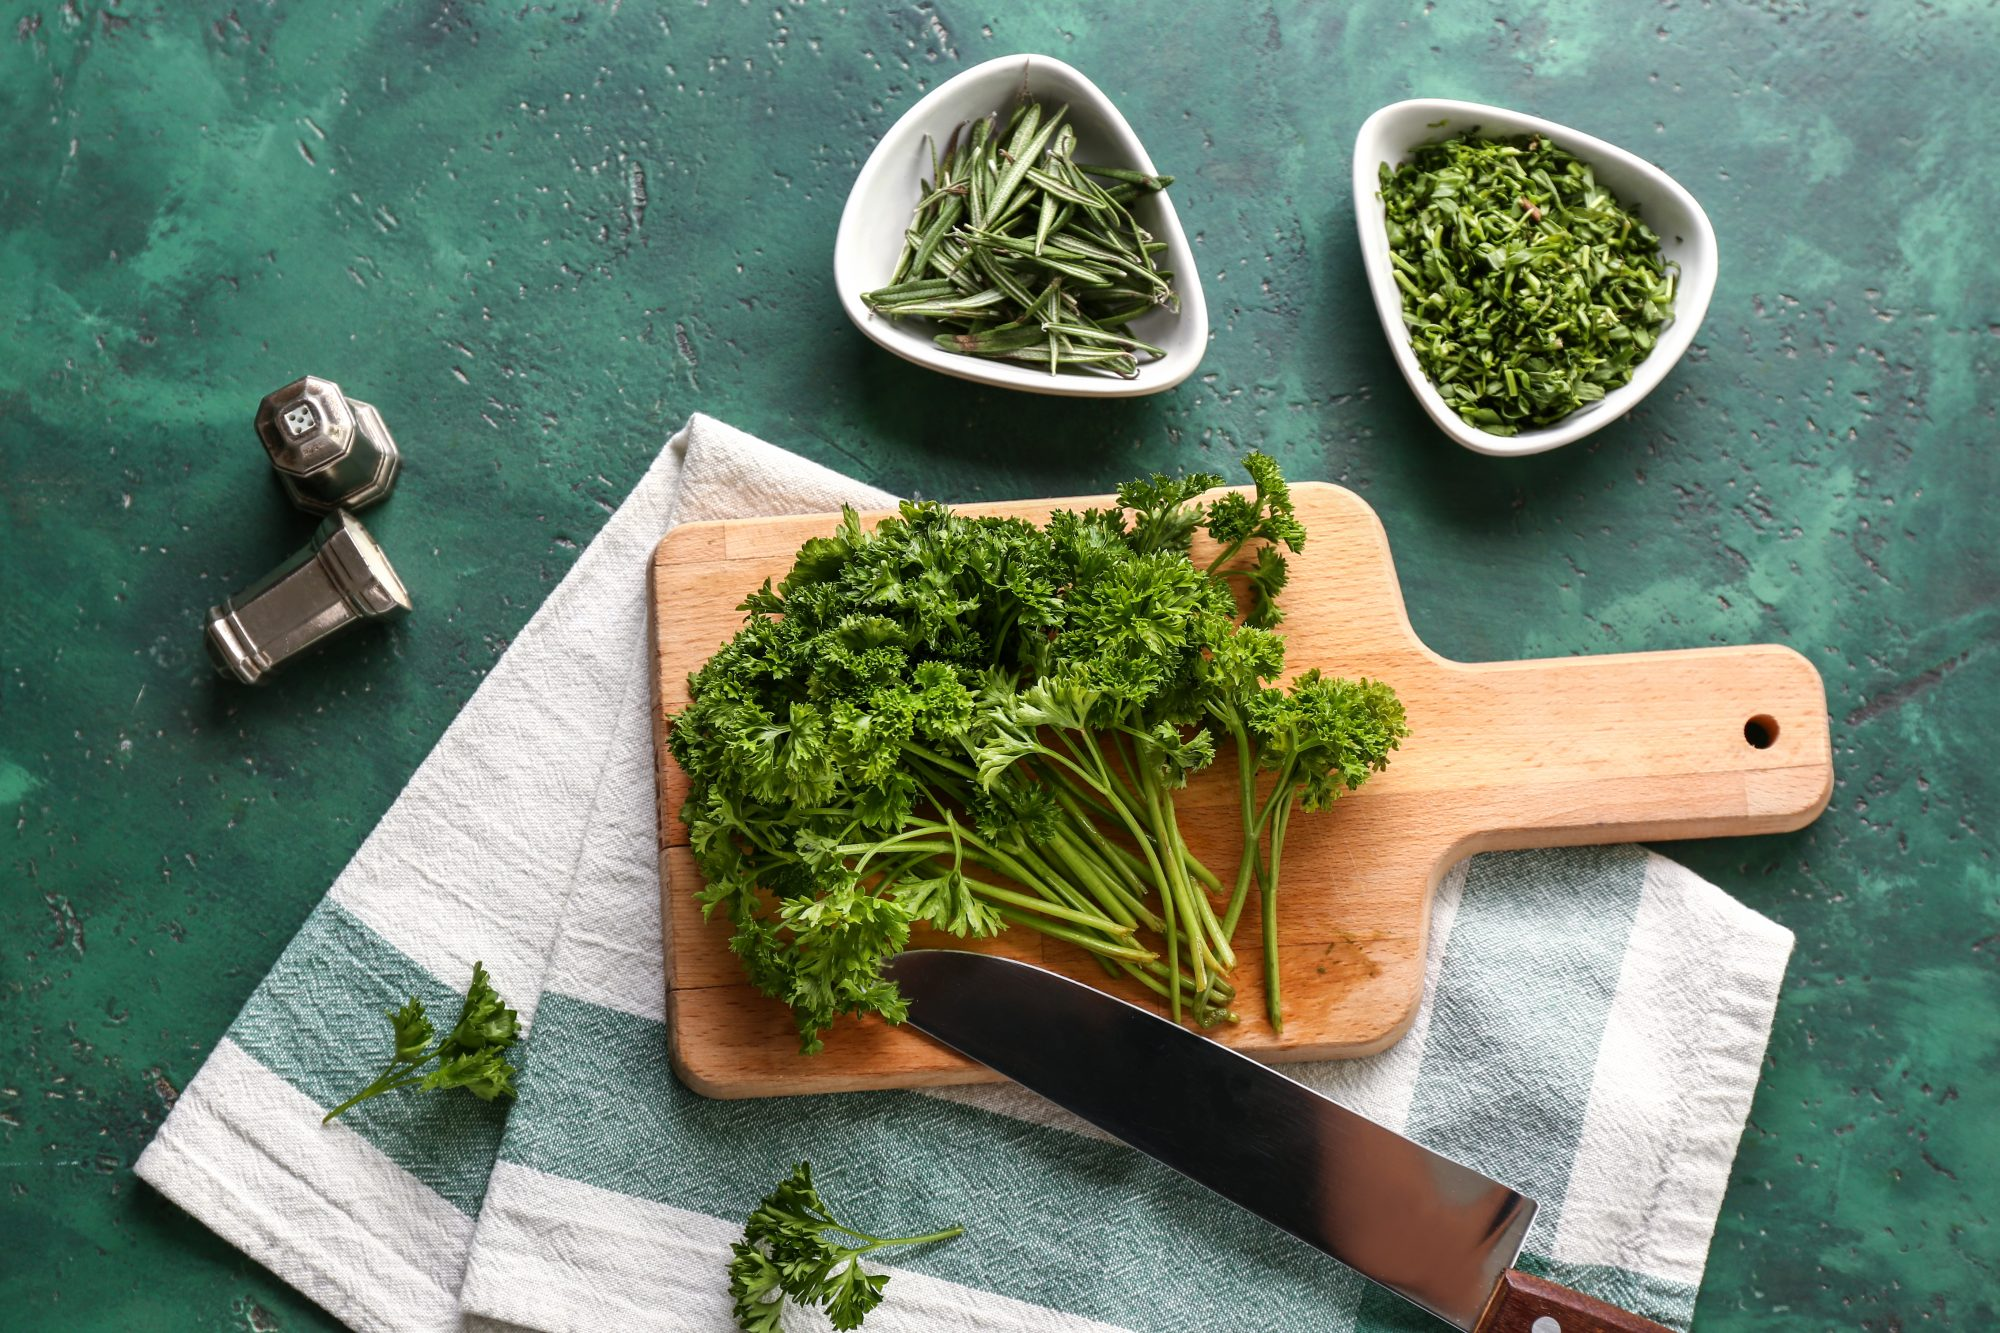 How to chop parsley: video and guide for cleaning, shopping, and storing parsley